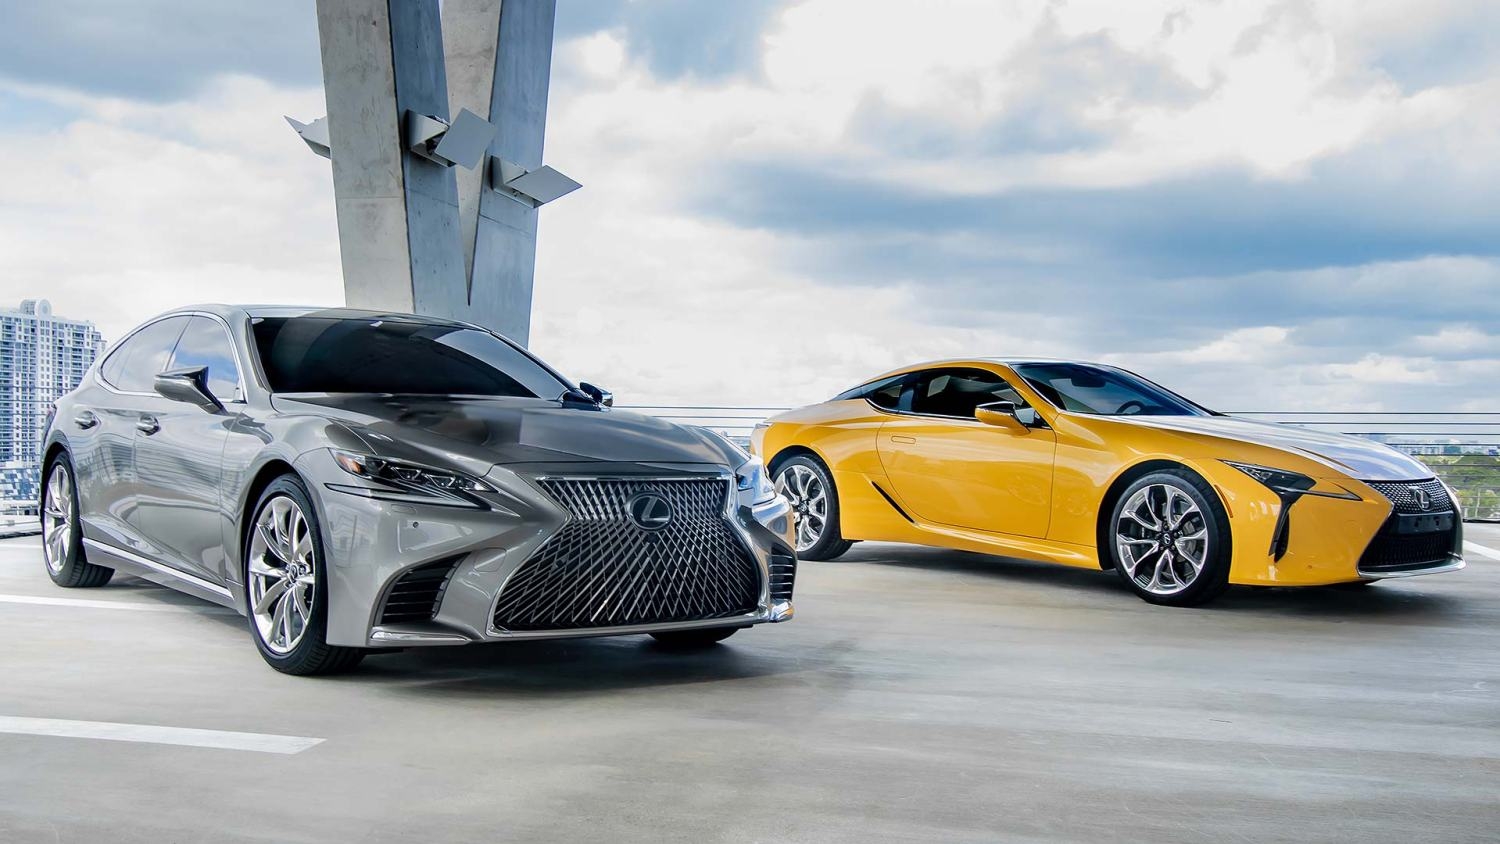 Lexus has sold 10 million vehicles